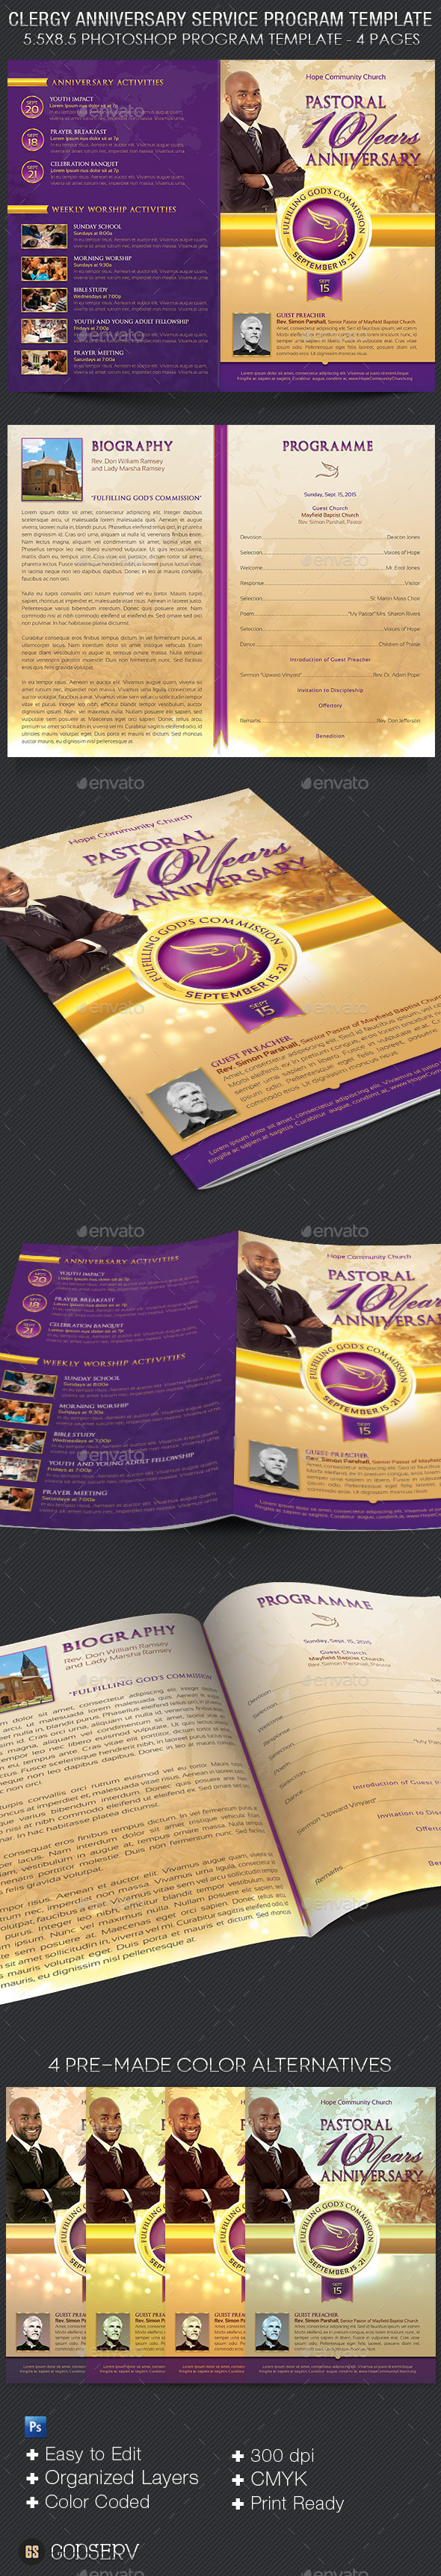 Clergy anniversary service program template by godserv graphicriver clergy anniversary service program template informational brochures thecheapjerseys Images